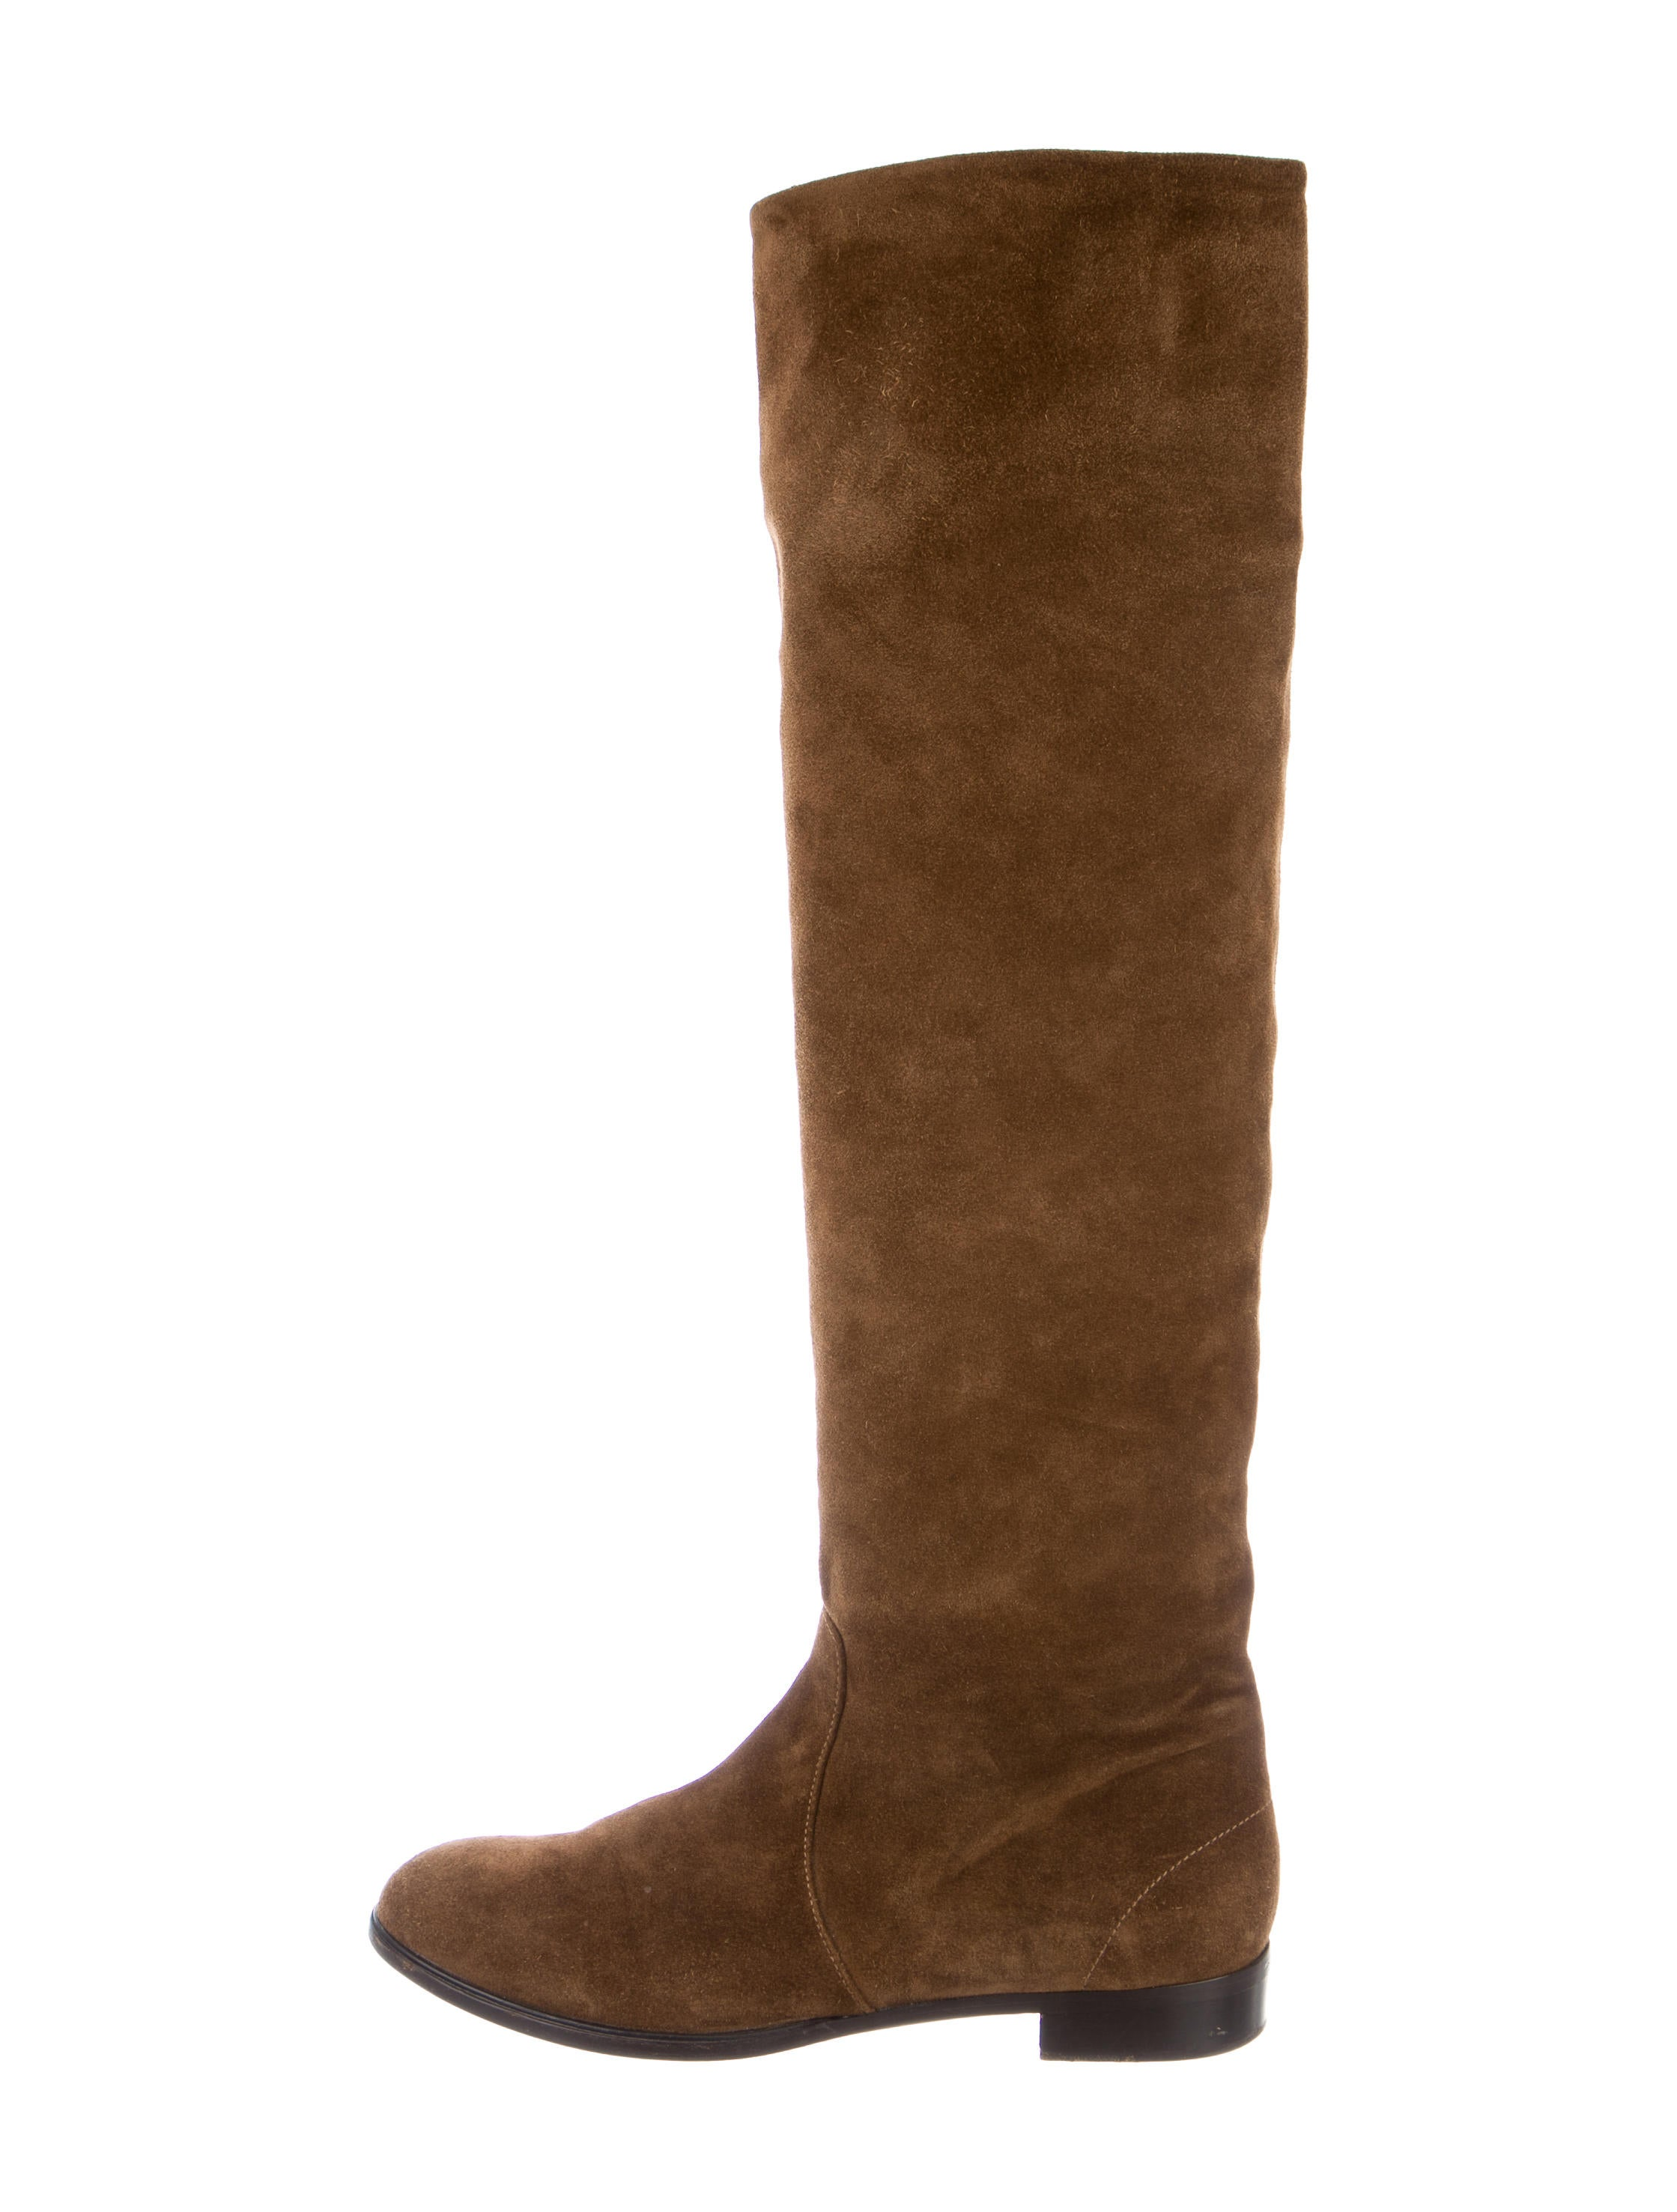 Prada Suede Knee High Boots Shoes PRA135513 The RealReal : PRA1355131enlarged from www.therealreal.com size 2239 x 2954 jpeg 321kB